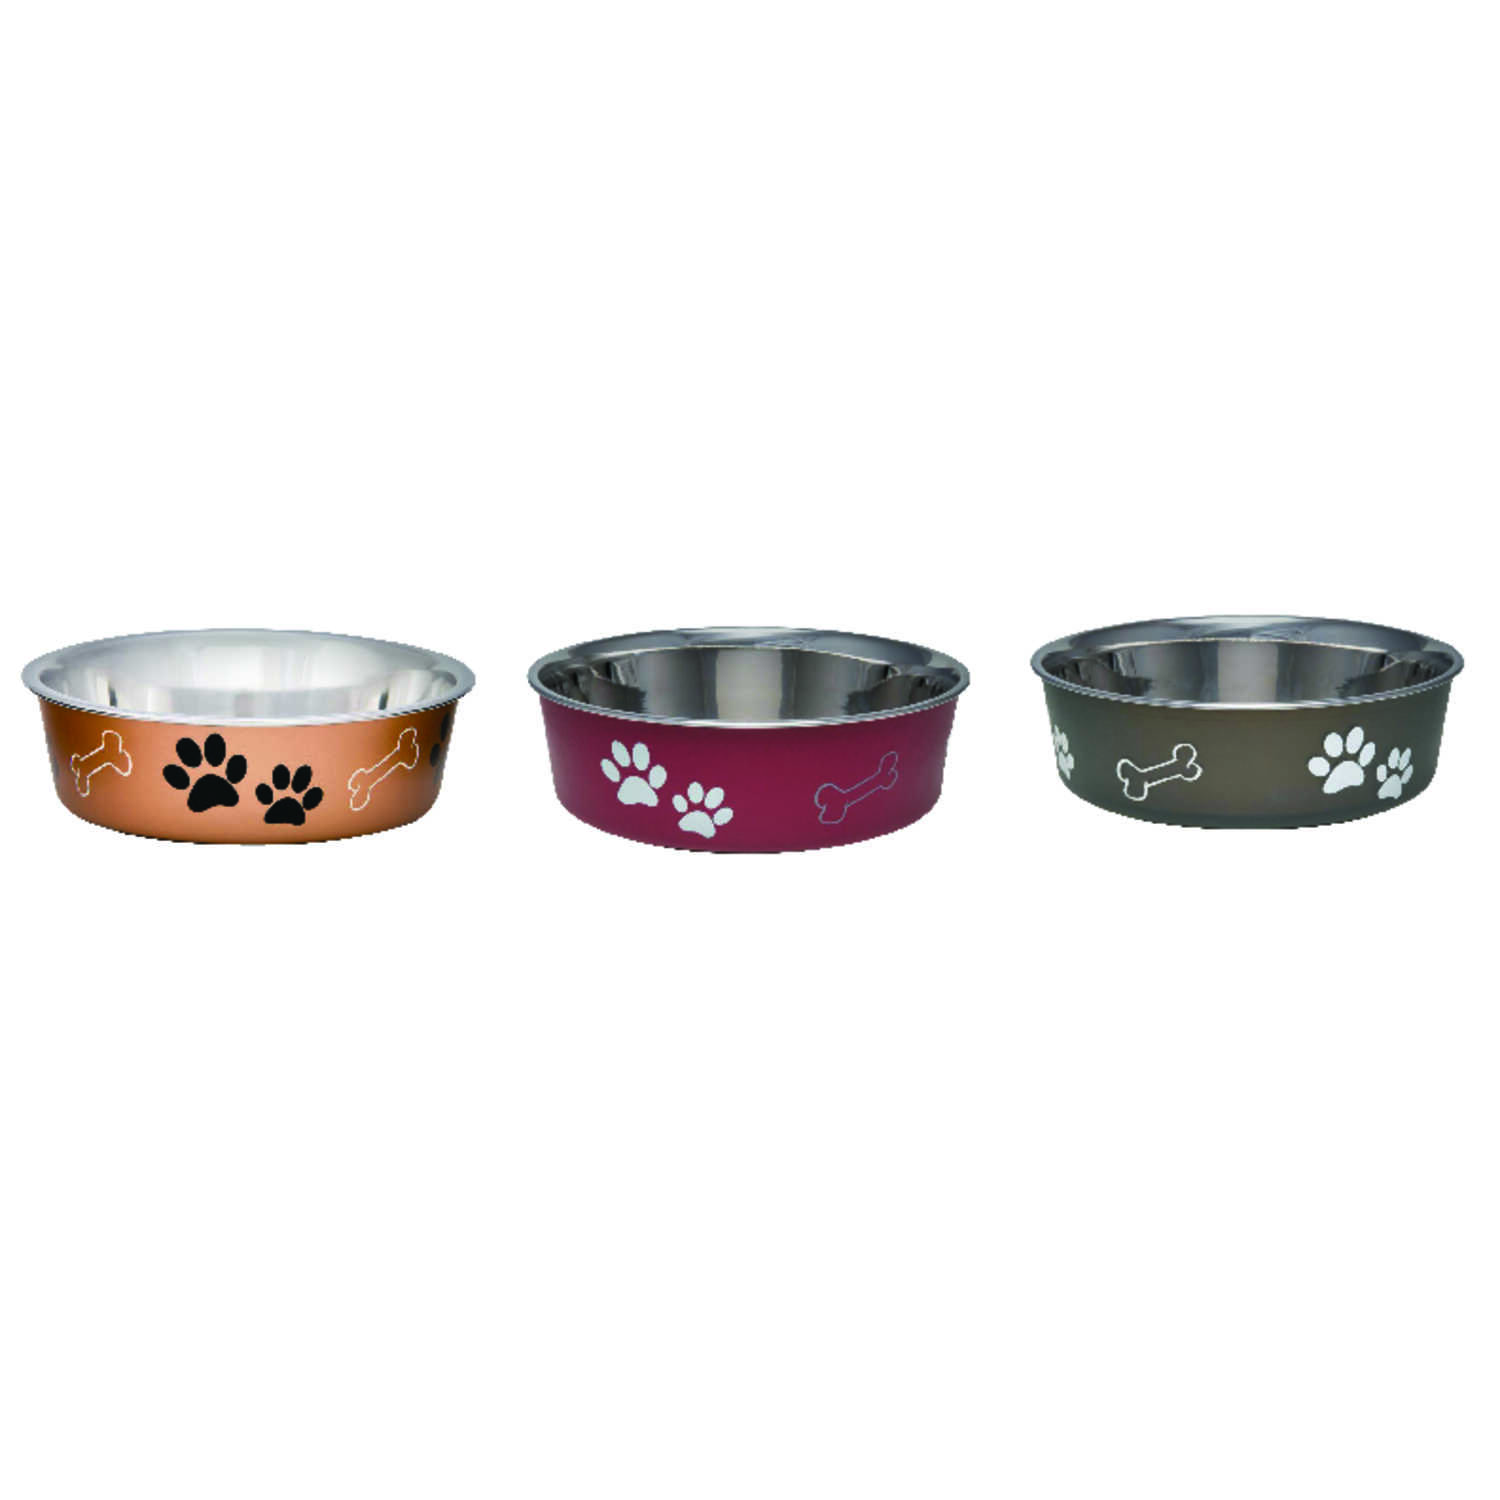 Loving Pets  Assorted  Bones and Paw Prints  Stainless Steel  4 cups Pet Bowl  For Dog